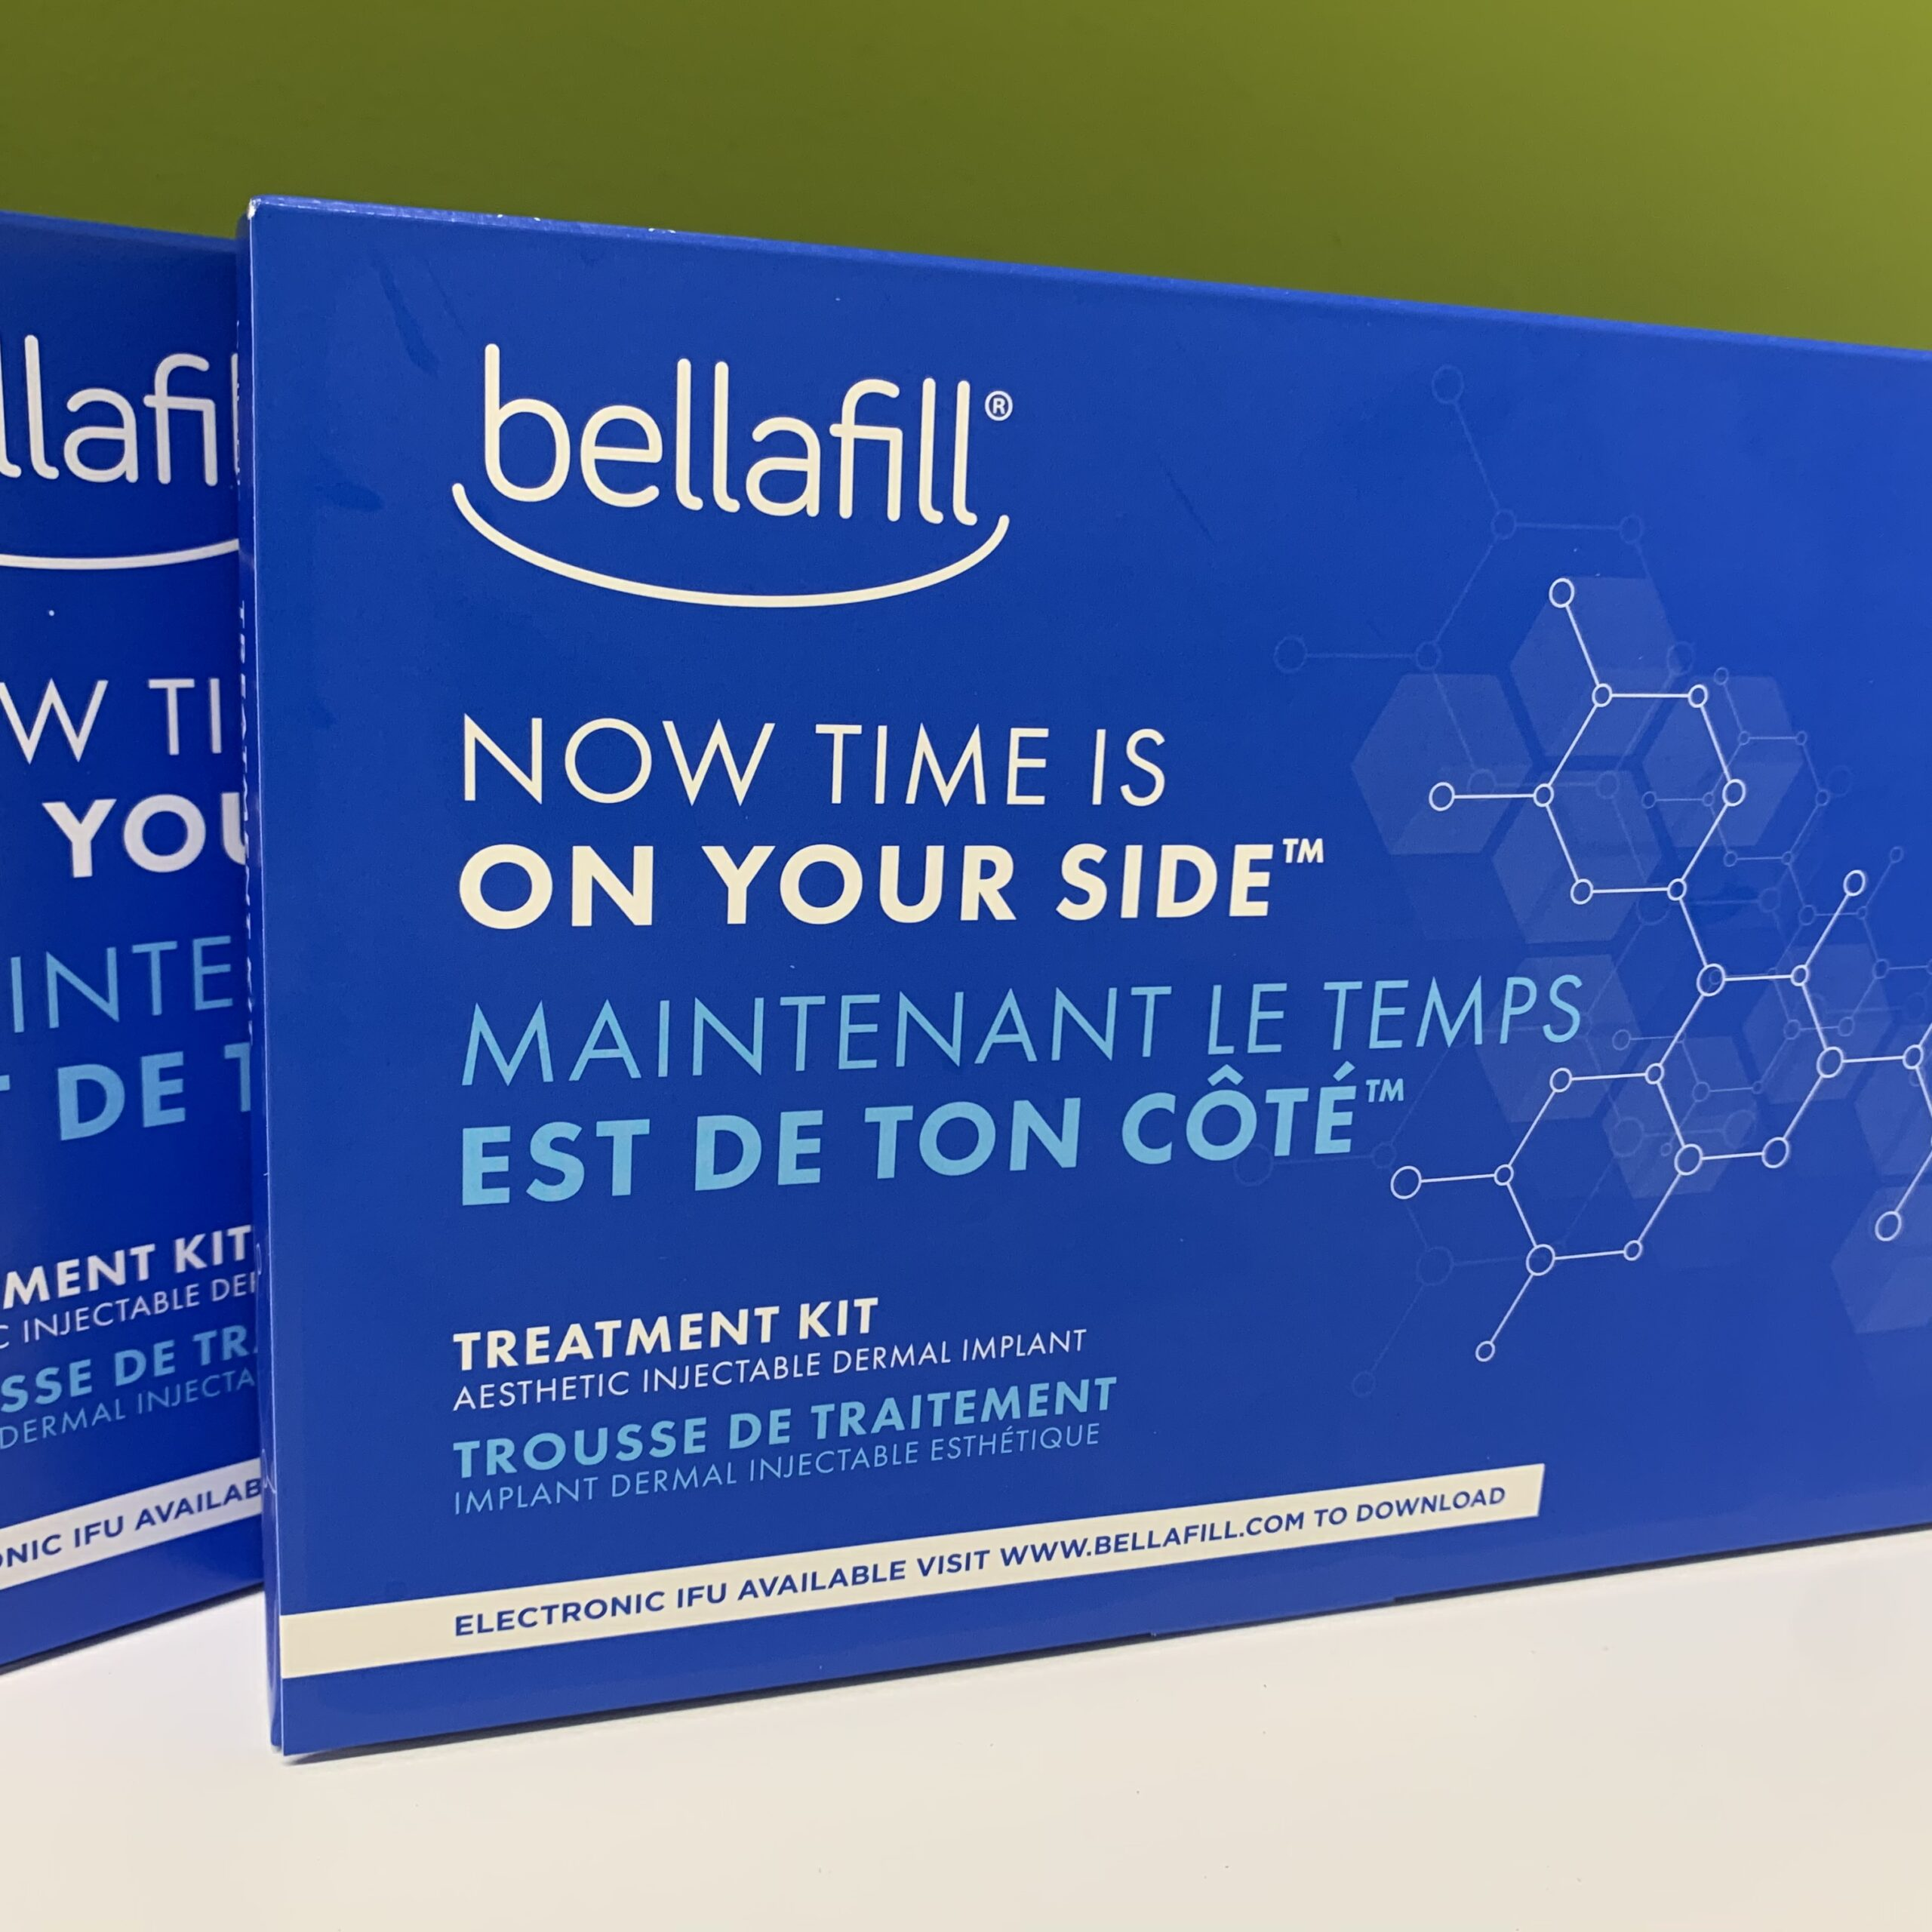 Save on Bellafill treatment kits. Bellafill is the longest lasting dermal filler available.